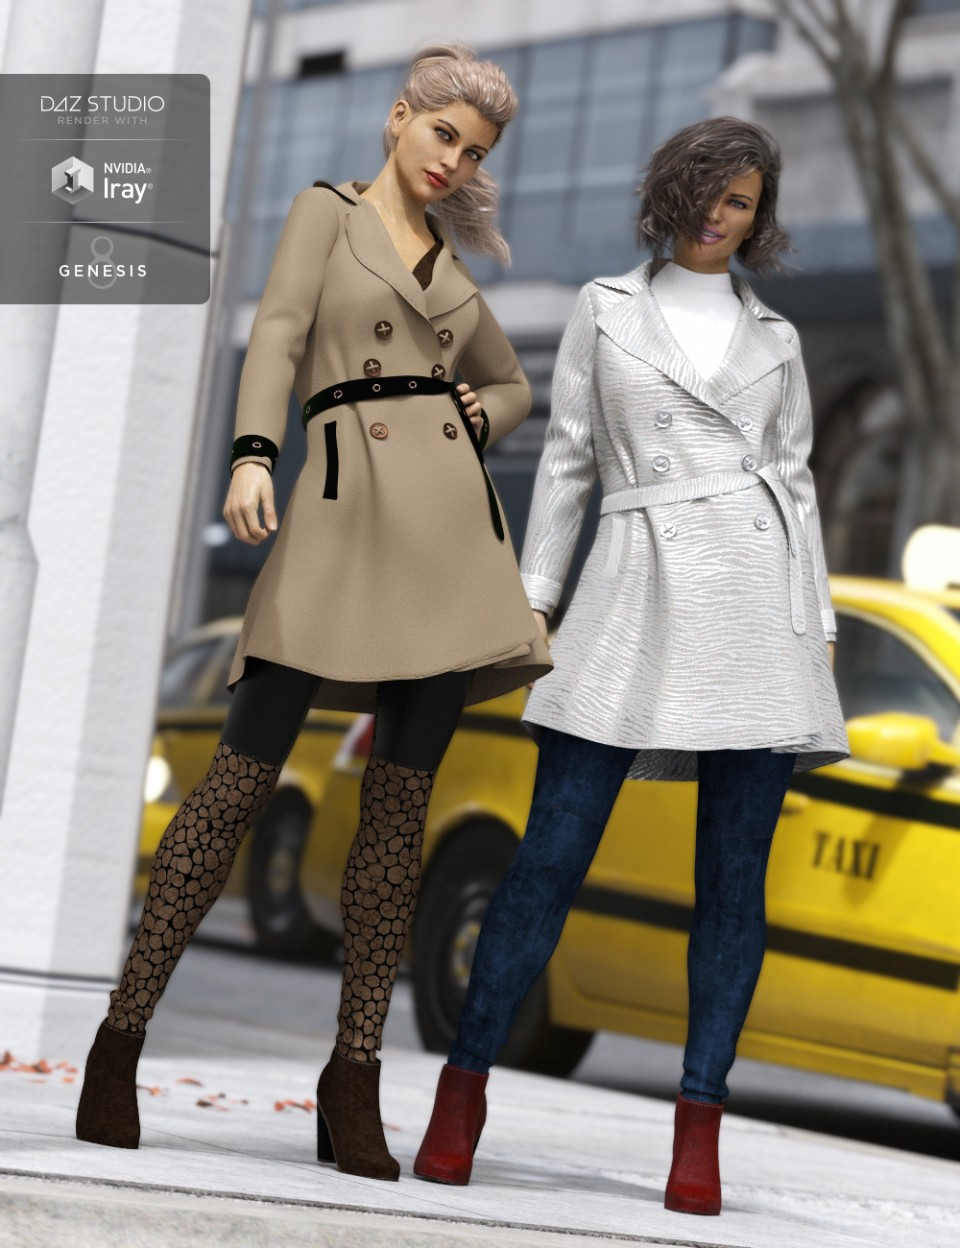 Trench Coat Outfit Textures_DAZ3D下载站